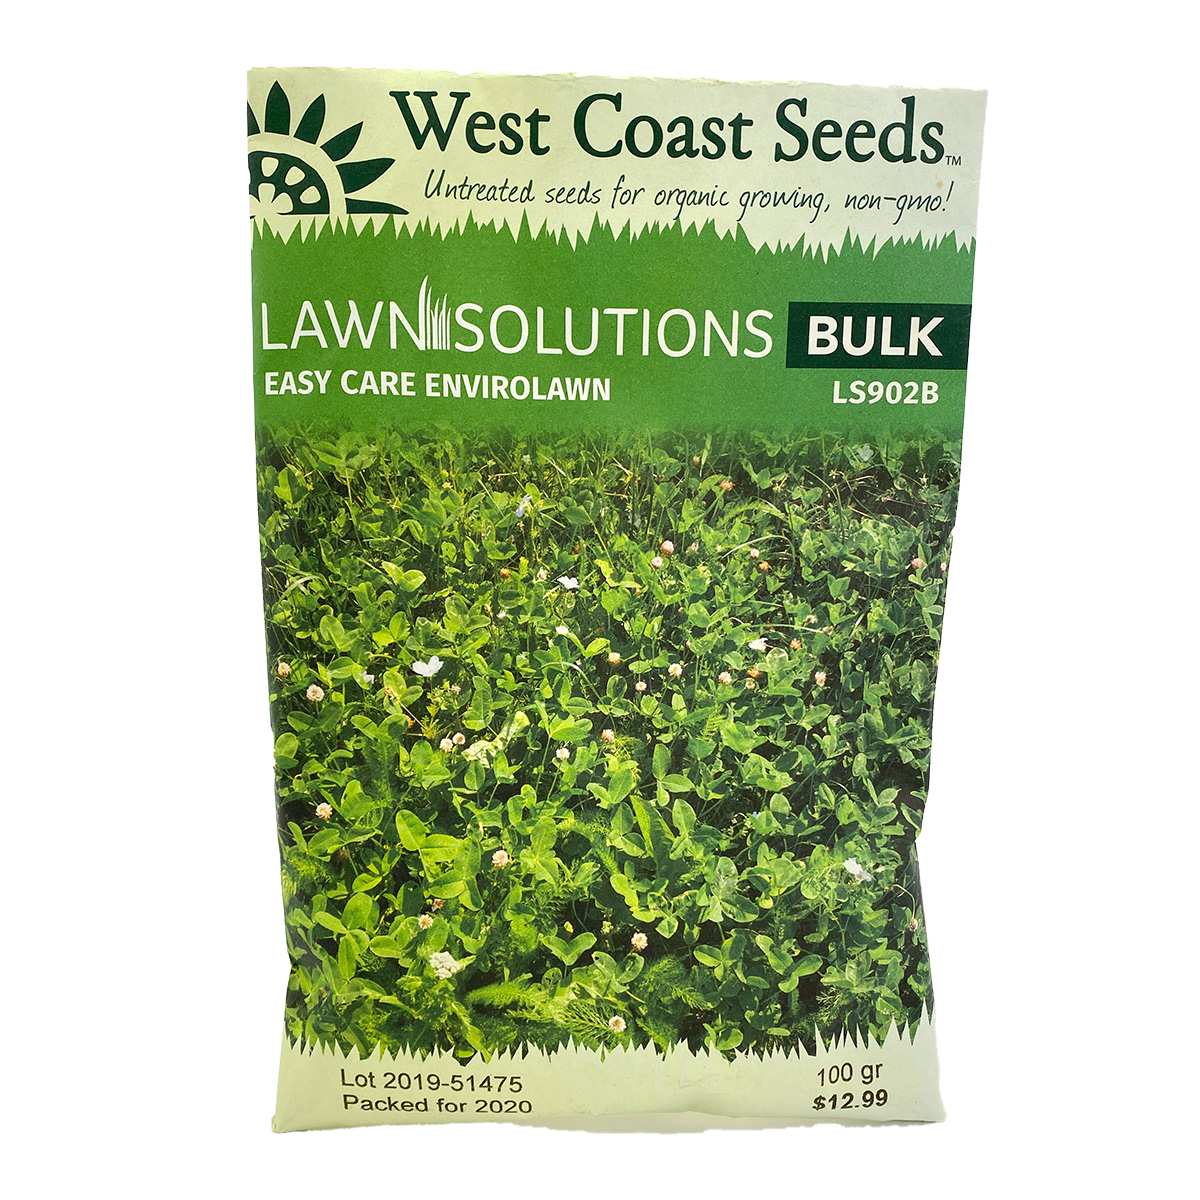 Easy Care Envirolawn Bulk Lawn Solutions 100g